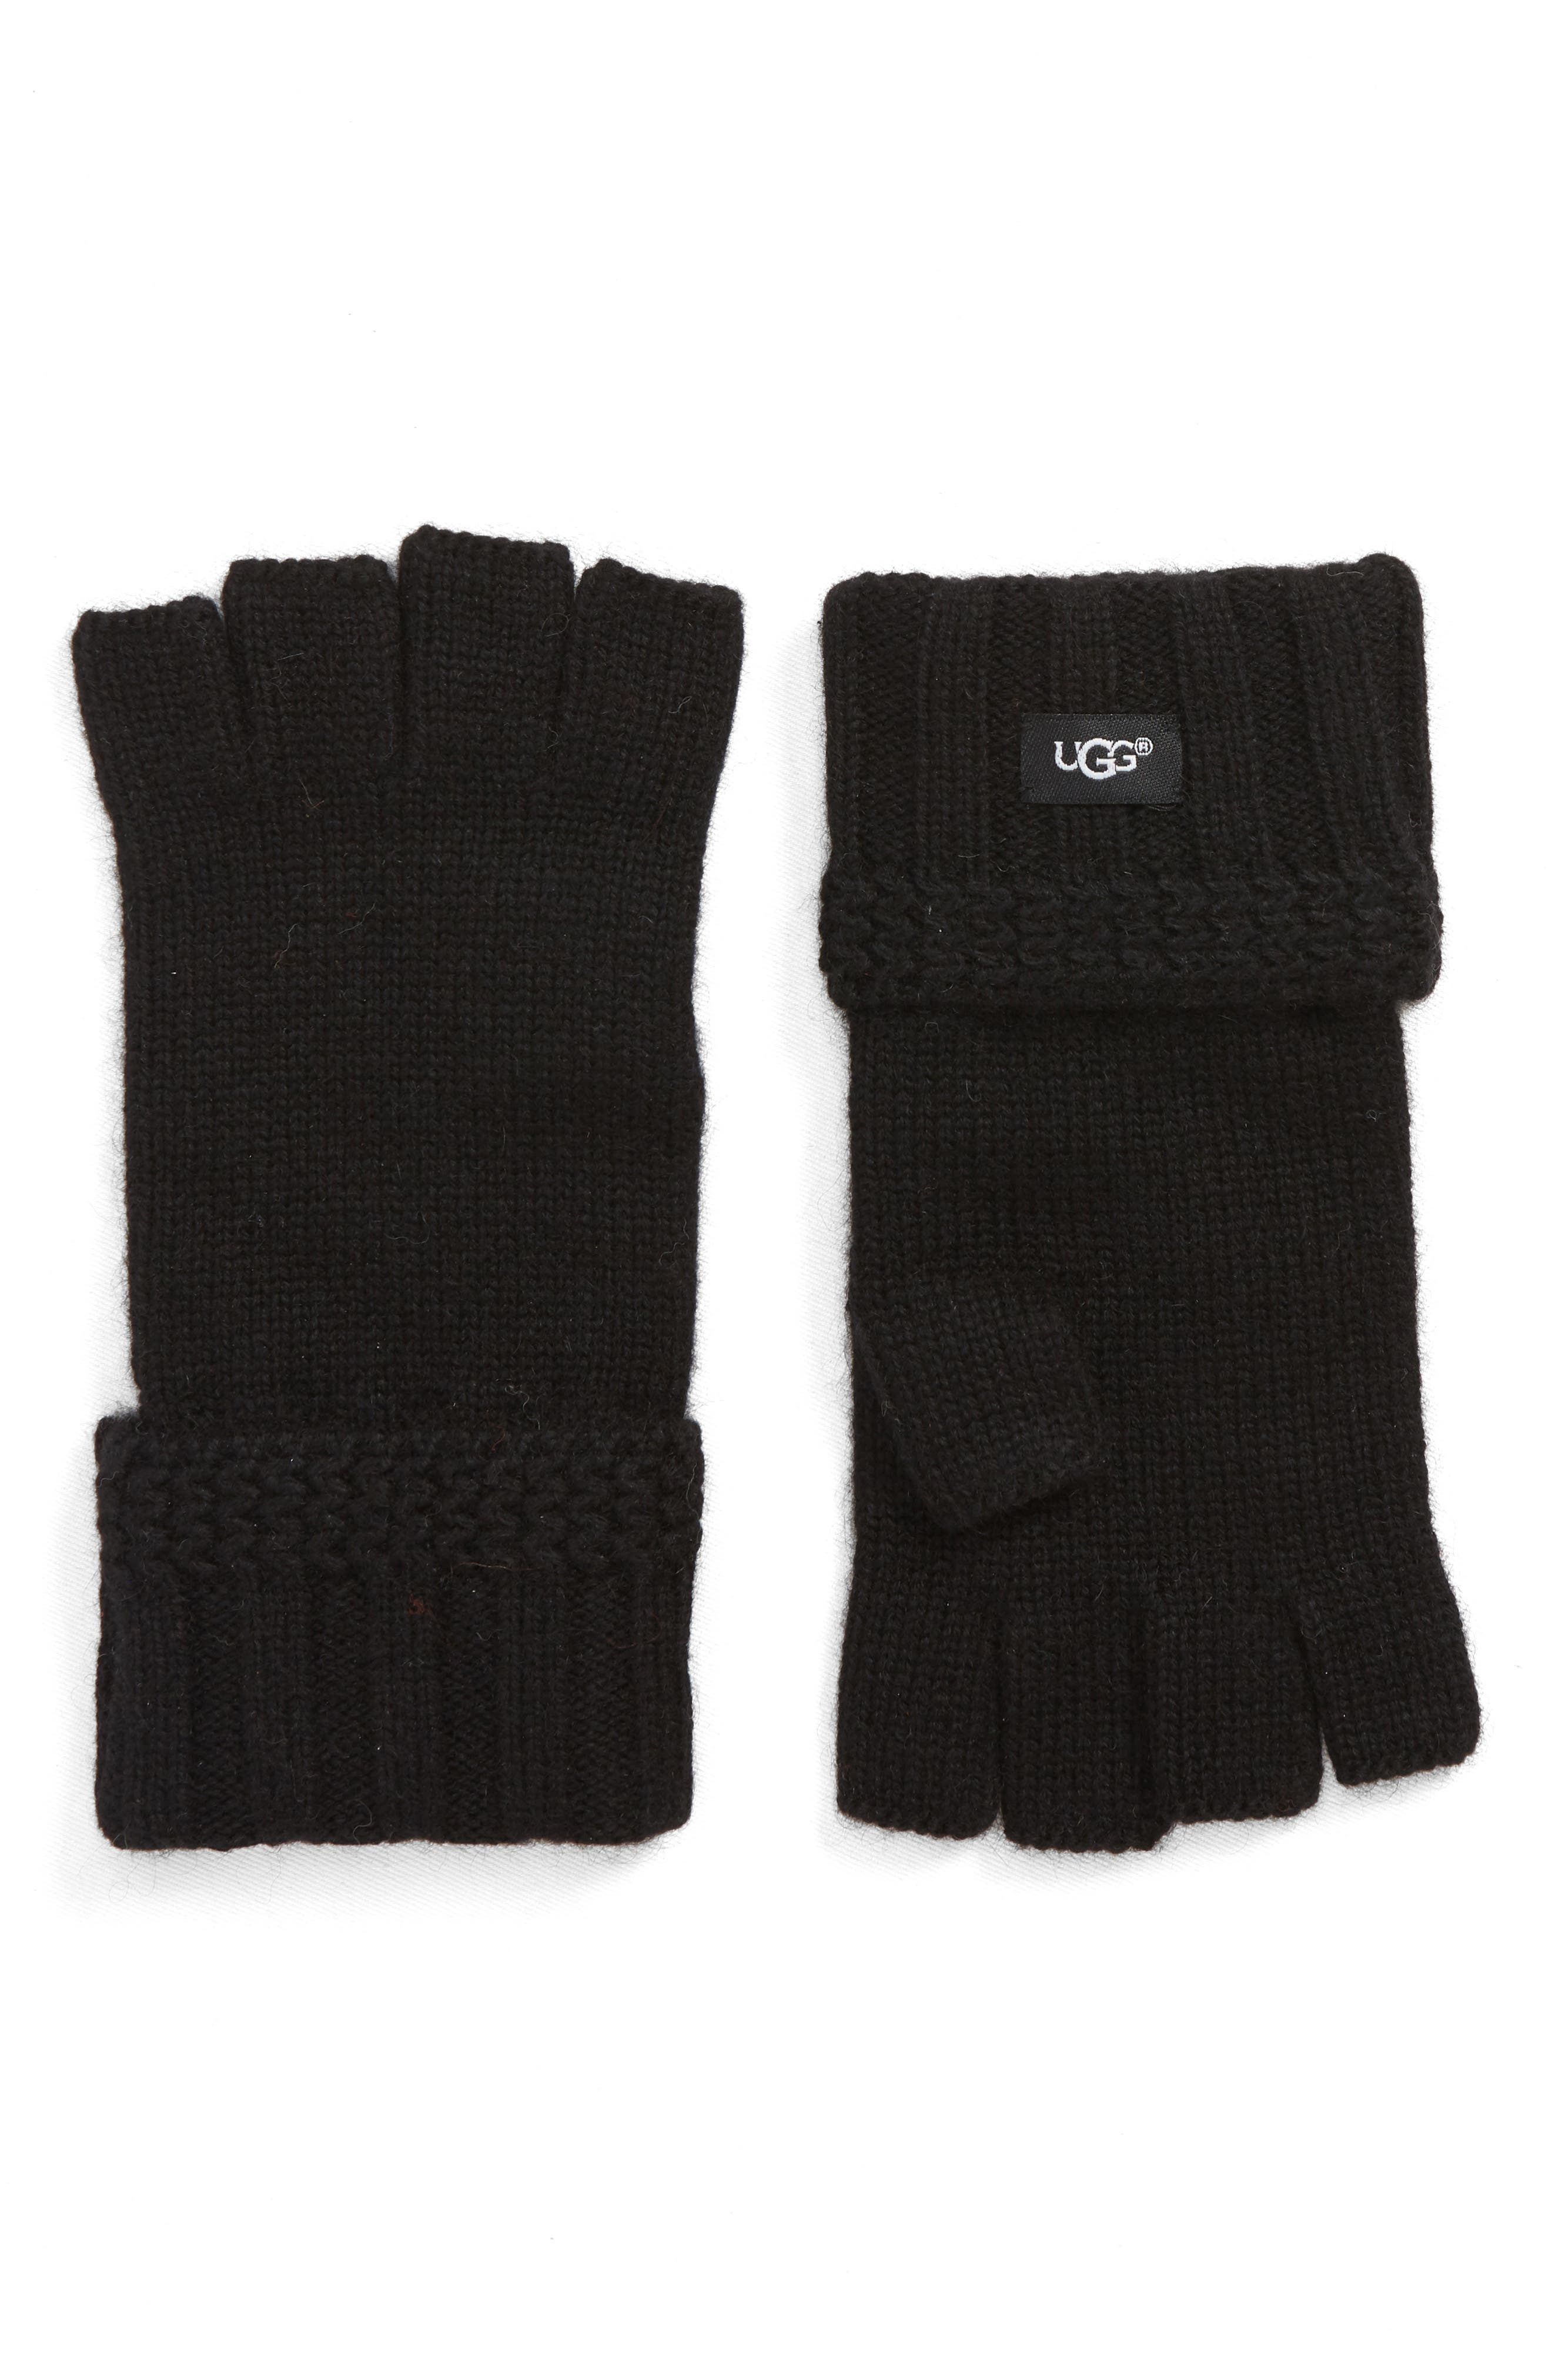 UGG<sup>®</sup> Textured Fingerless Knit Gloves,                             Main thumbnail 1, color,                             001